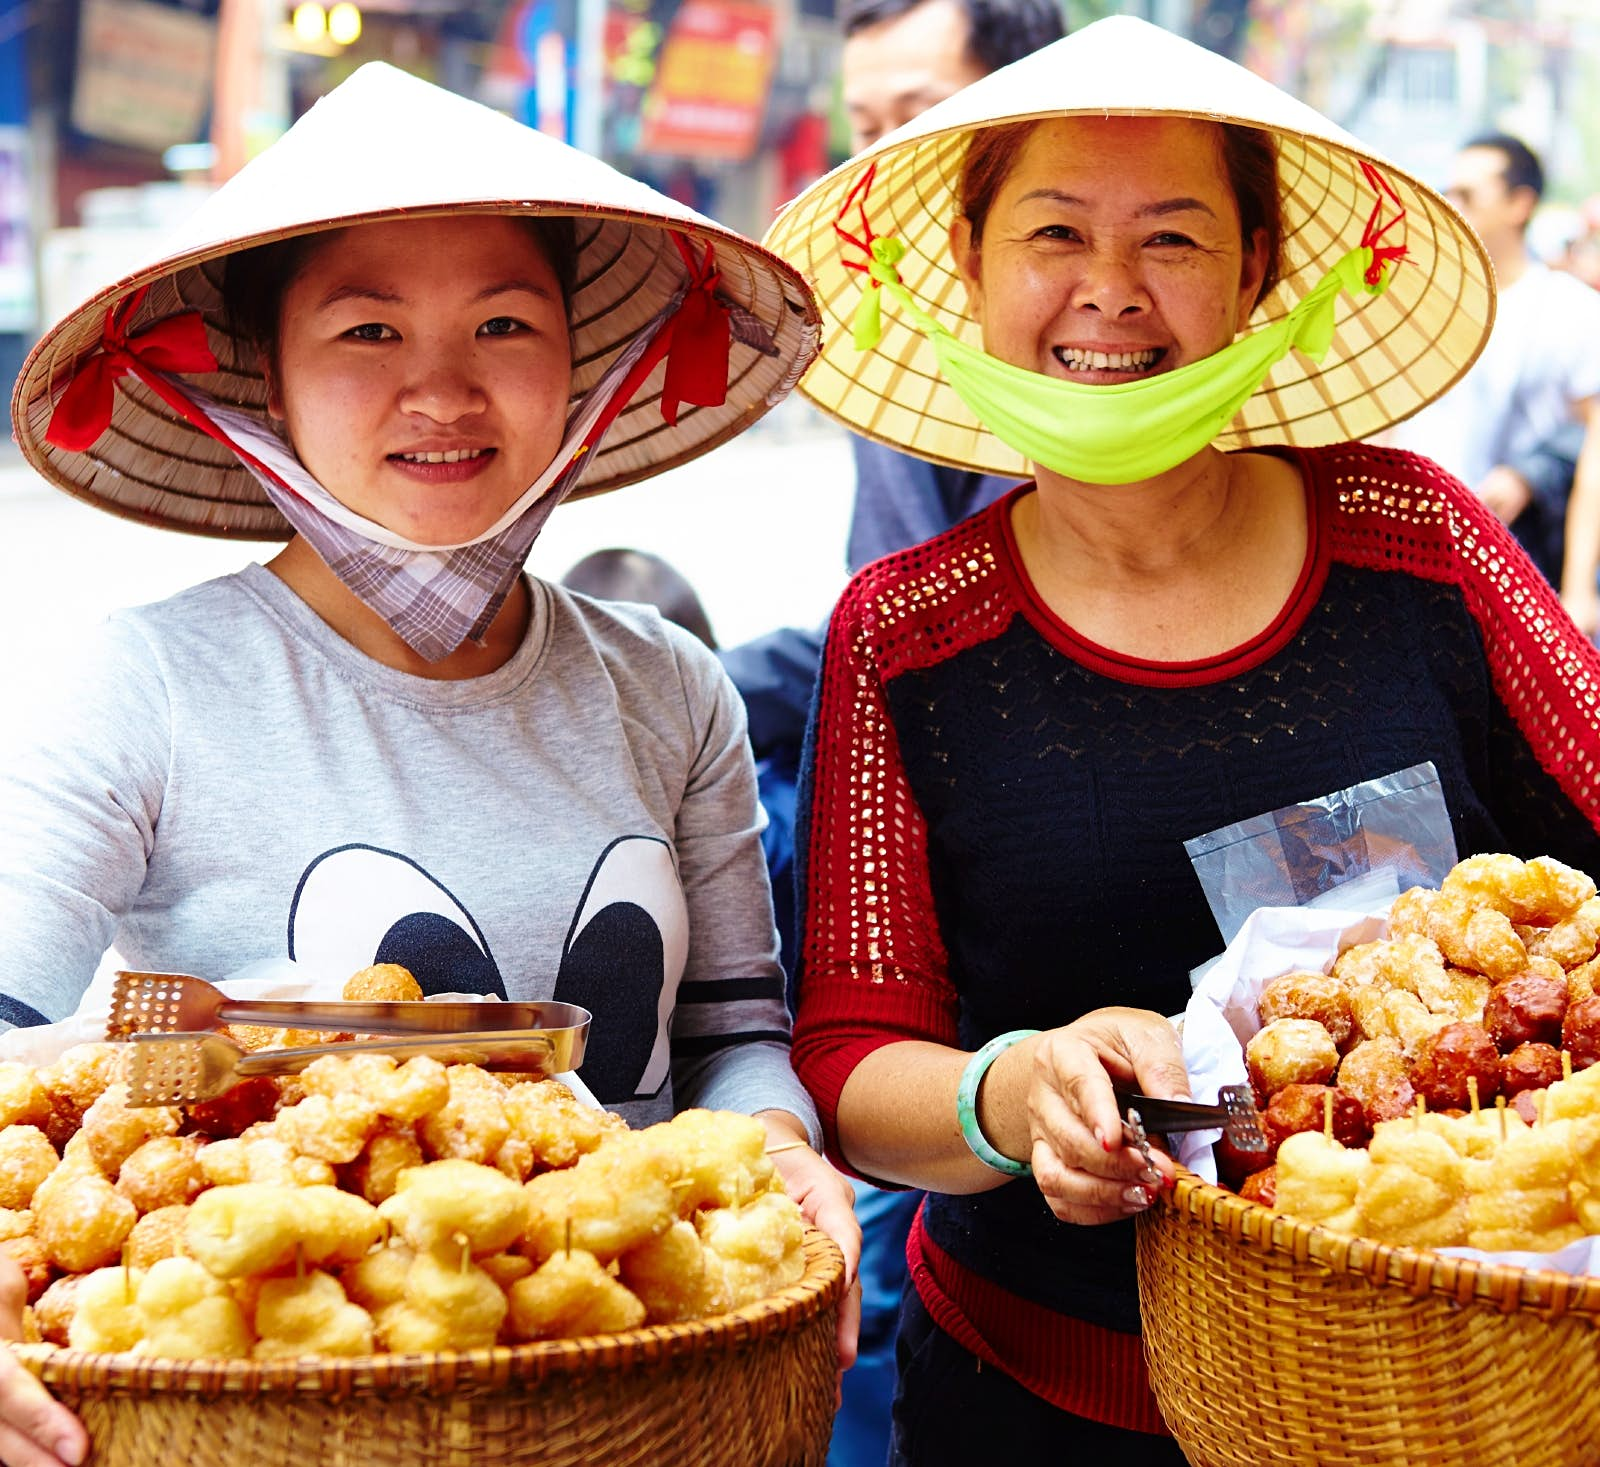 Two women pose with baskets of street food in Hanoi. Both women are wearing conical hats, which are common in the country.